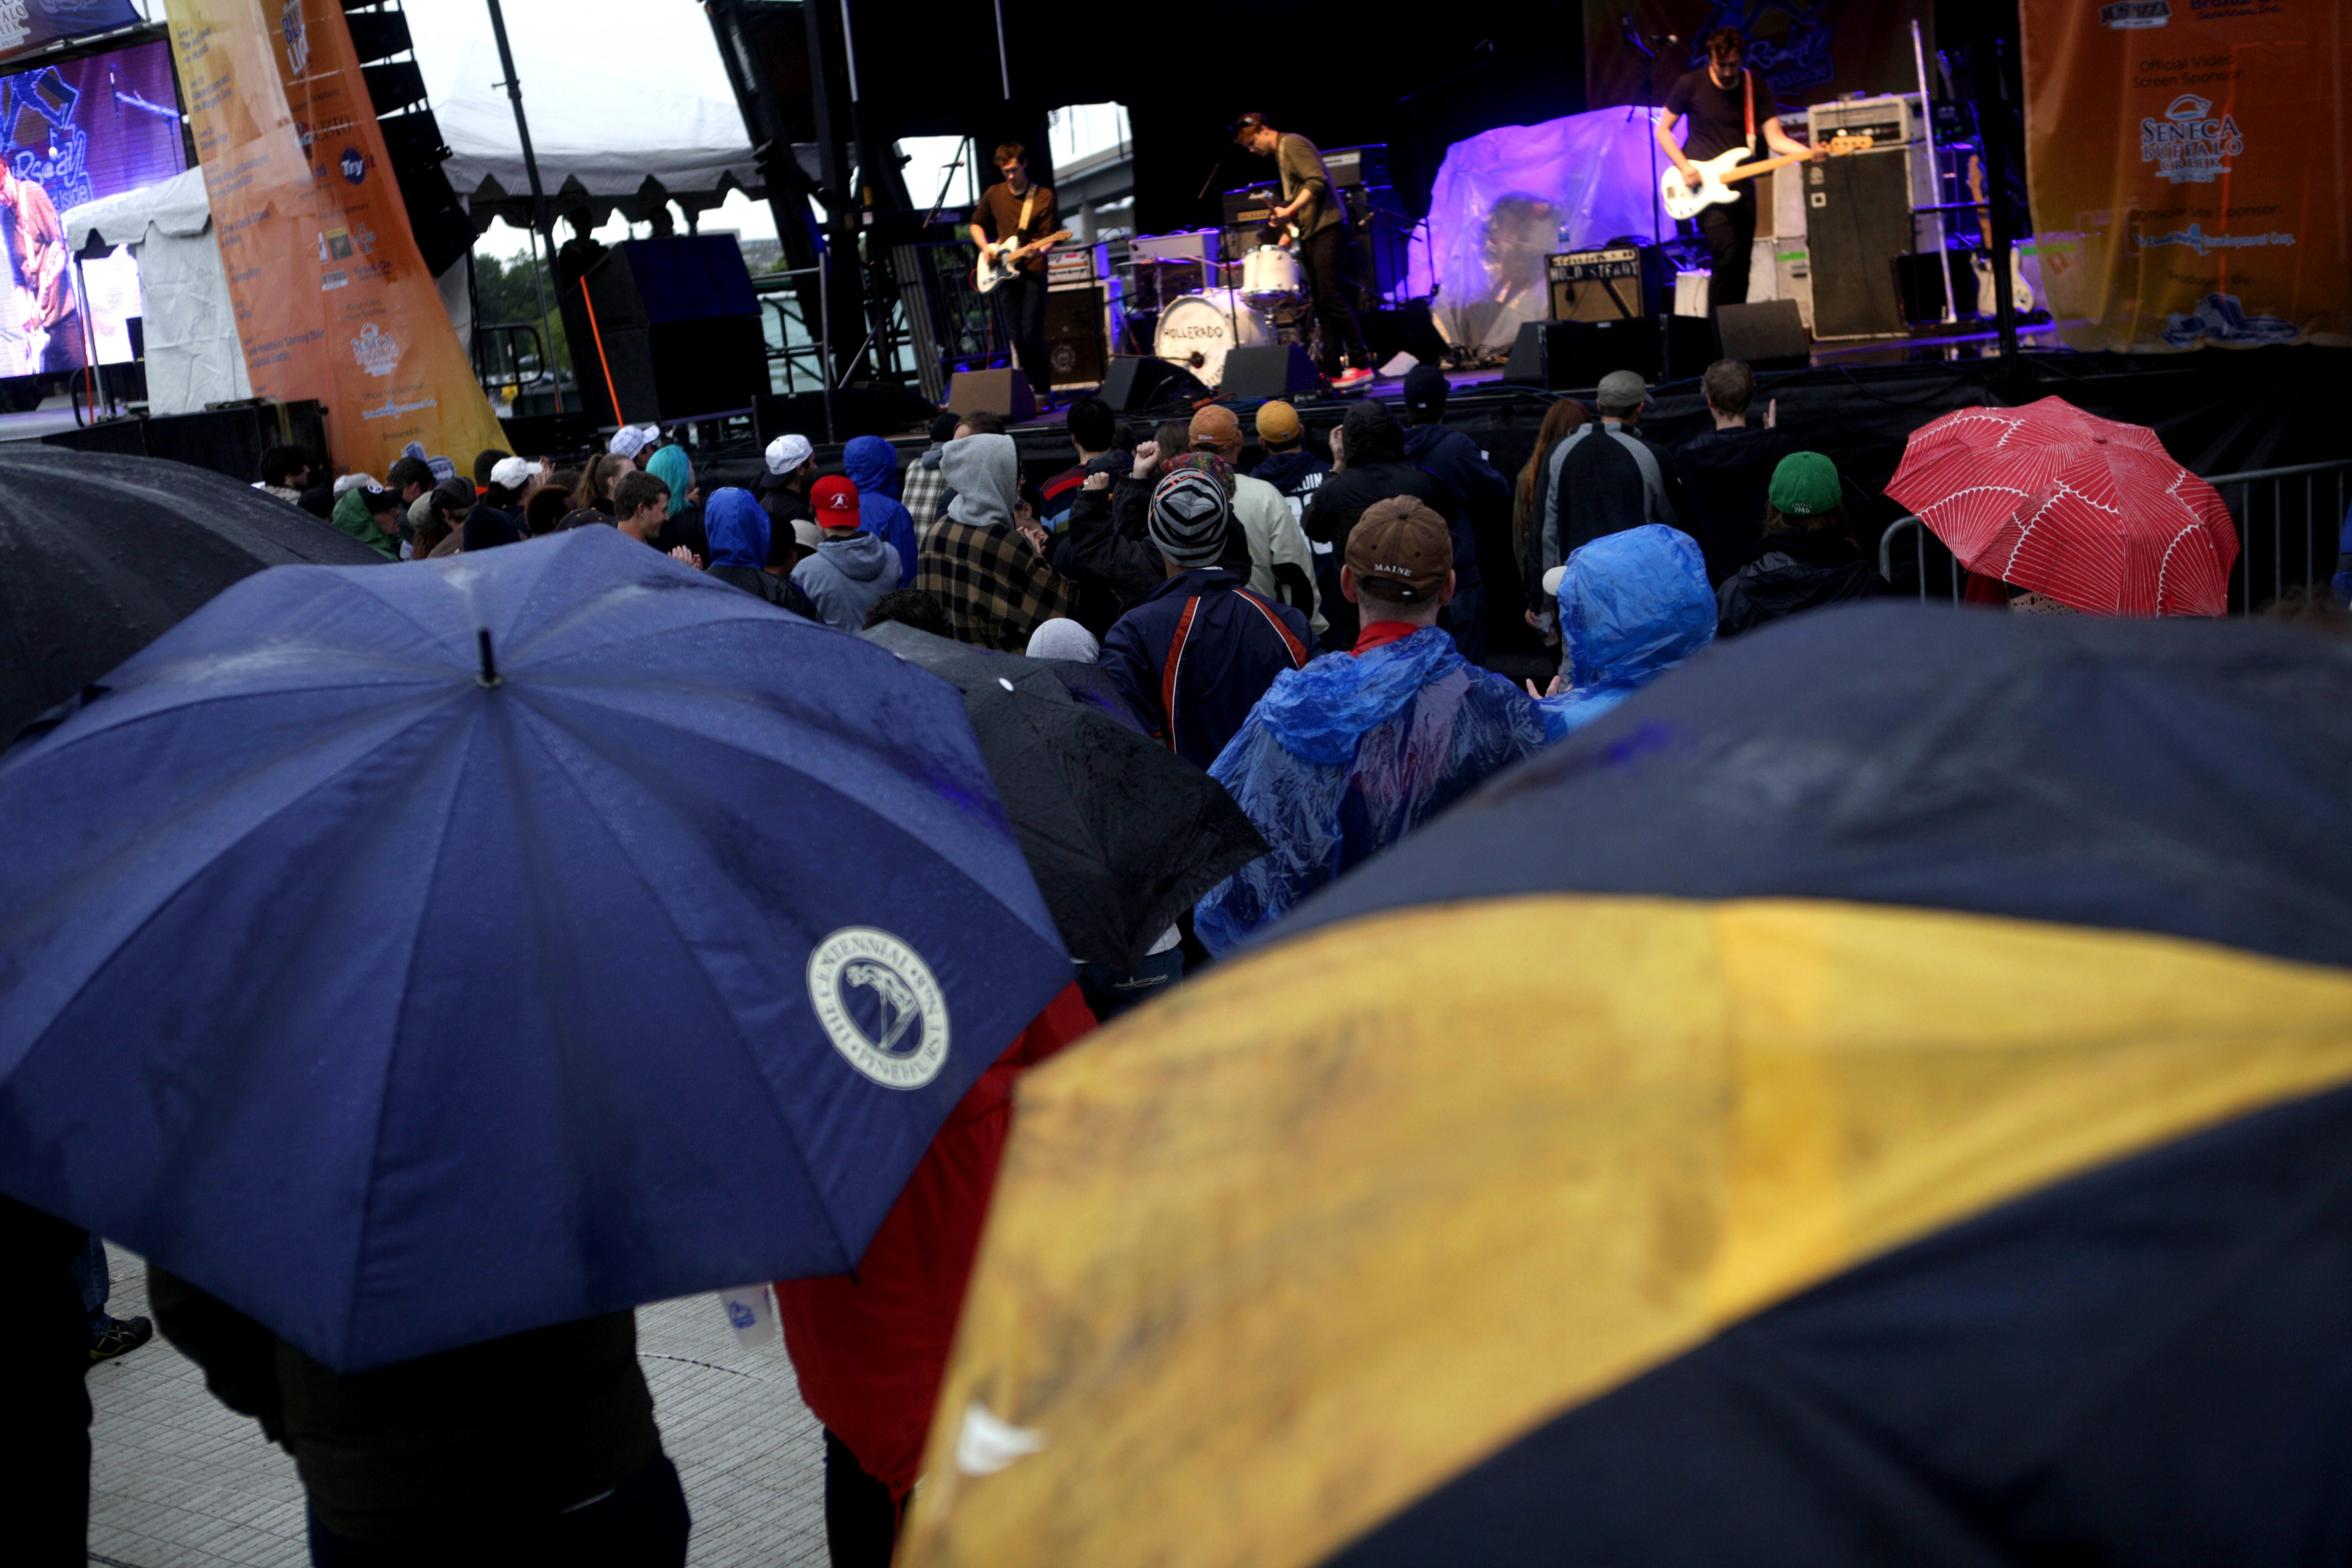 Umbrellas were an all-too-familiar sight this summer at Canalside, with three Thursday concerts taking place in the rain. The season ends this weekend.